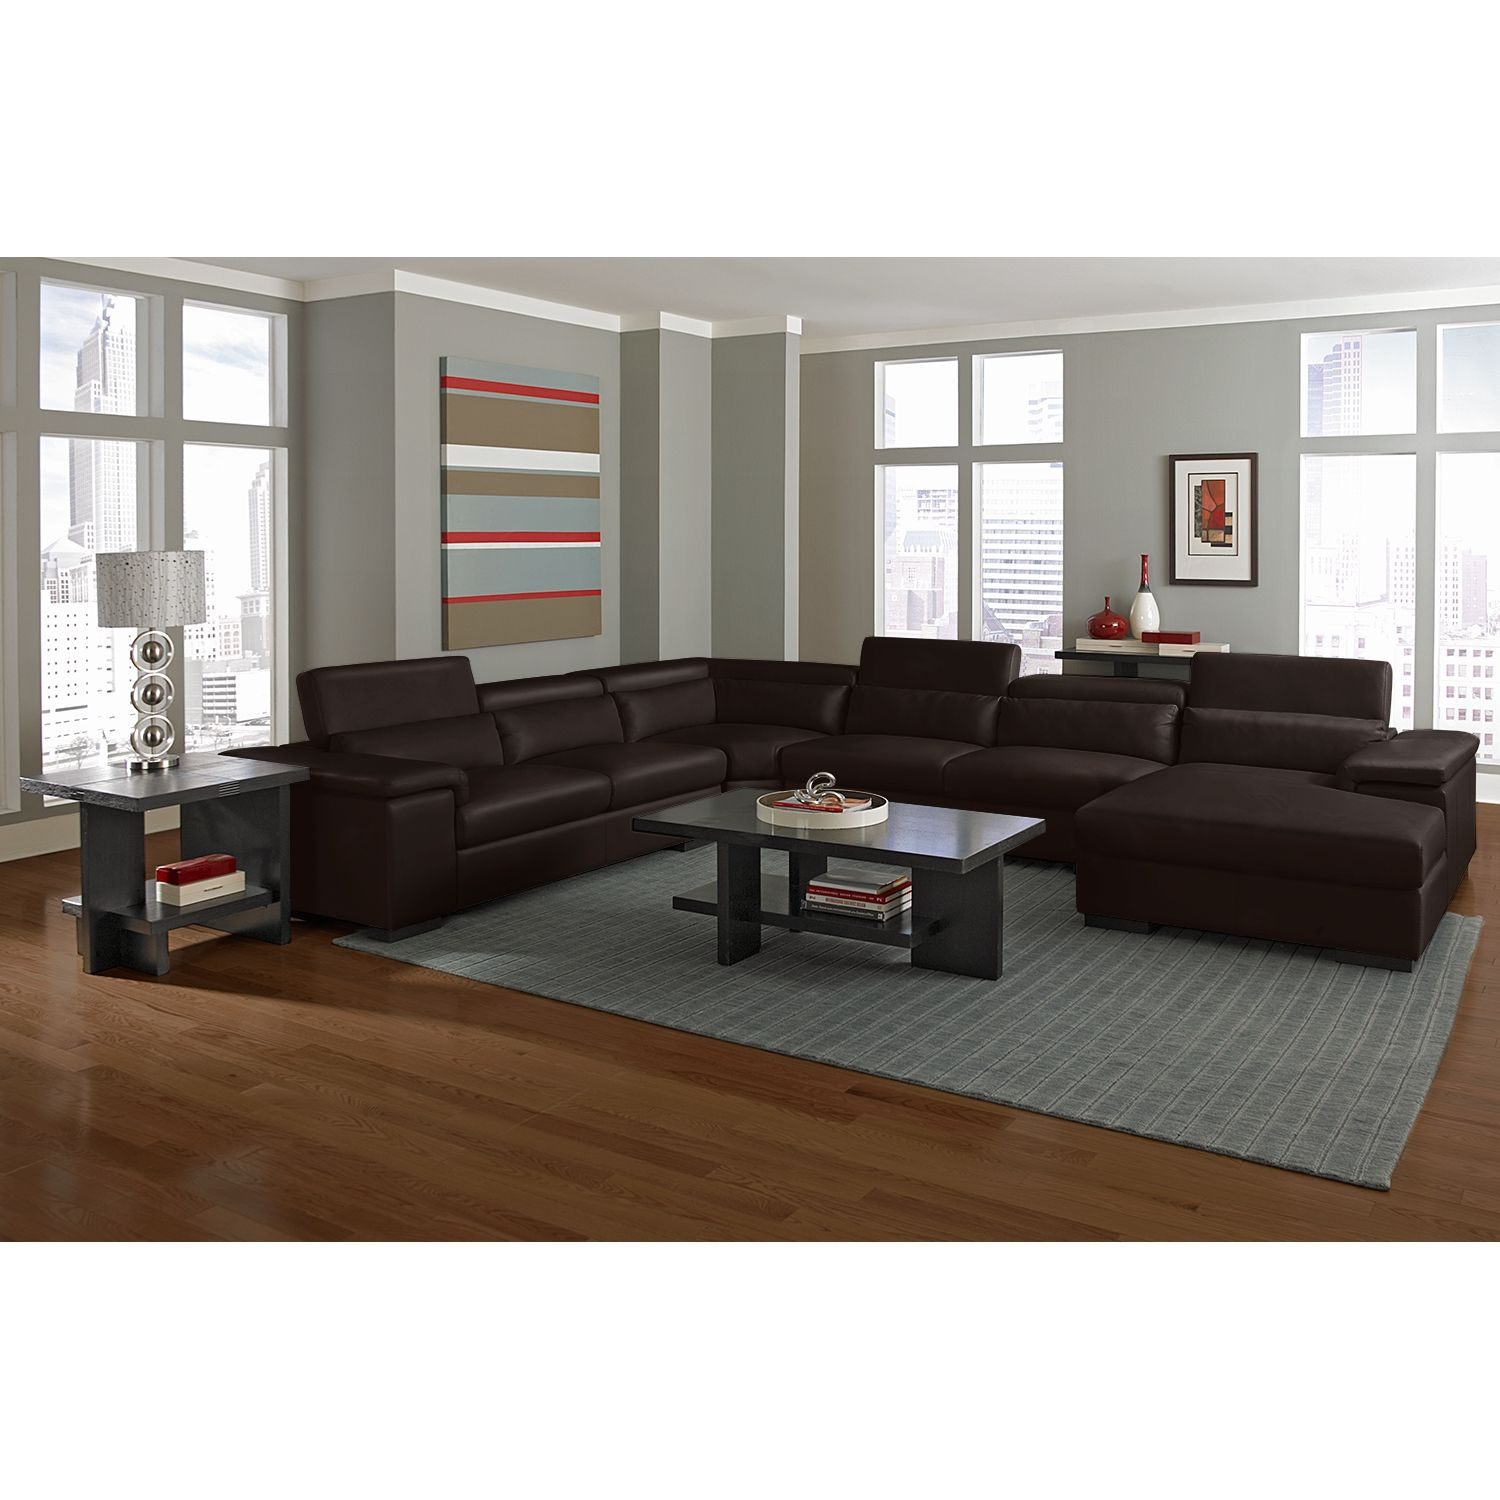 Comfortable Den Furniture American Signature Furniture Ventana Ii Leather 4 Pc